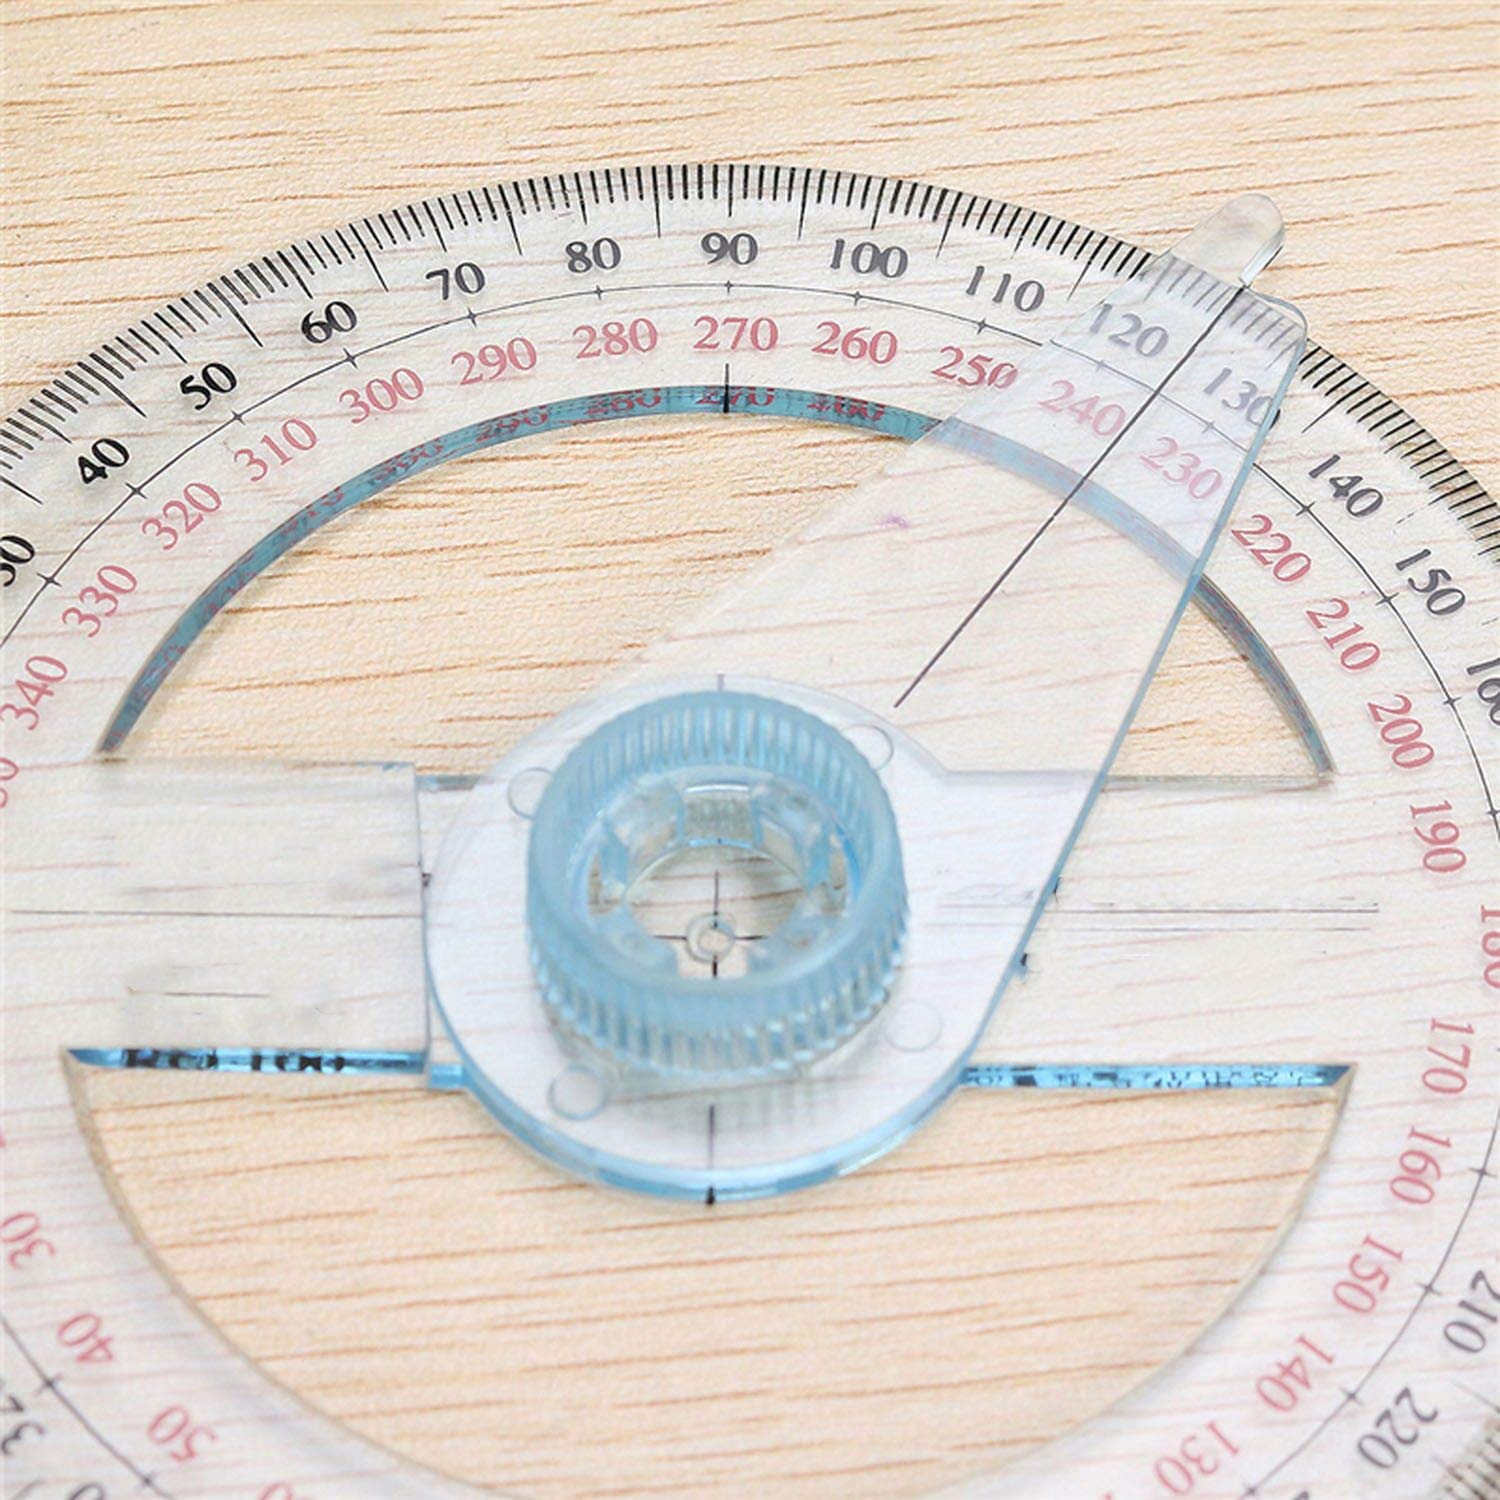 Portable Diameter of 10cm Plastic 360 Degree Pointer Protractor Ruler Angle Swing Arm for School Office Supplies,1 Pc by lucky-eye (Image #4)